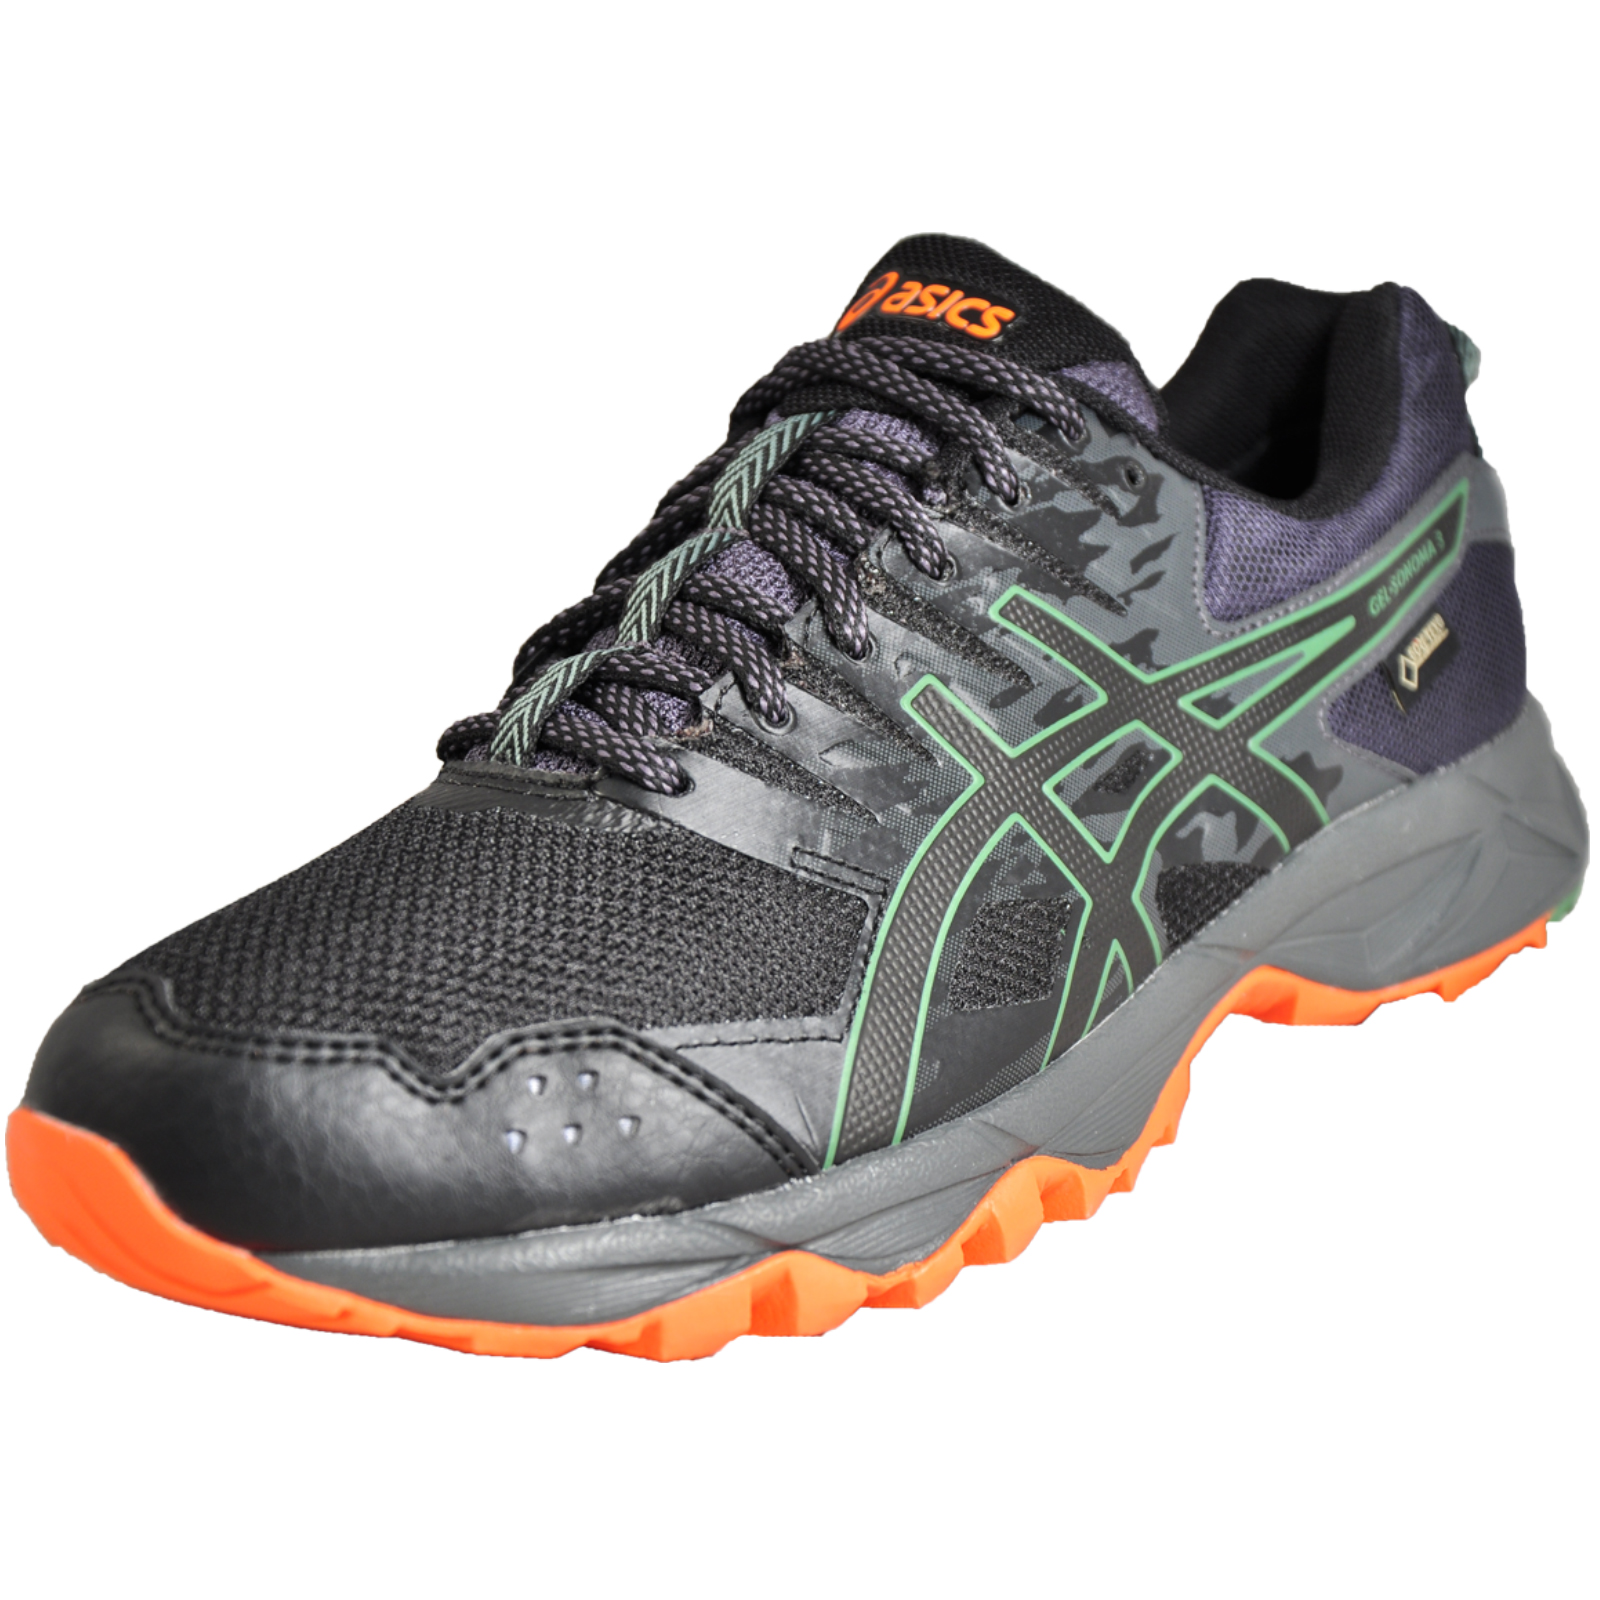 1beda38fd690 Details about Asics Gel Sonoma 3 GTX Gore-Tex Men s Waterproof All Terrain  Trail Running Shoes